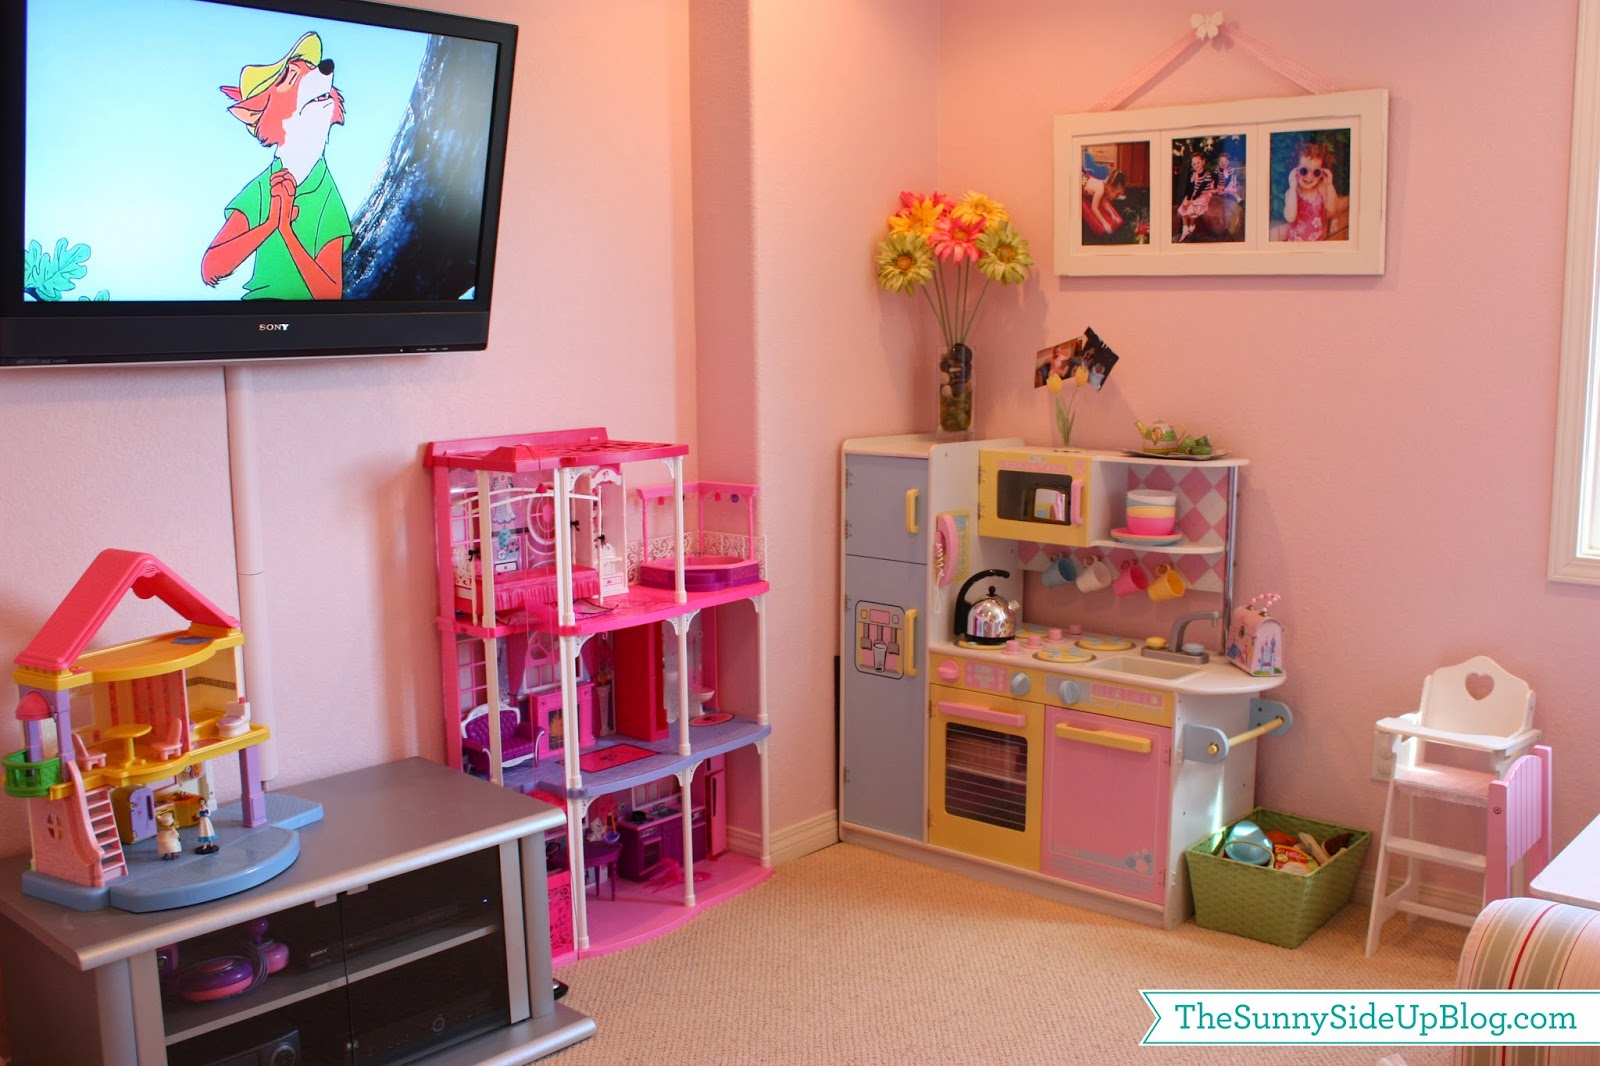 Playroom: The Sunny Side Up Blog